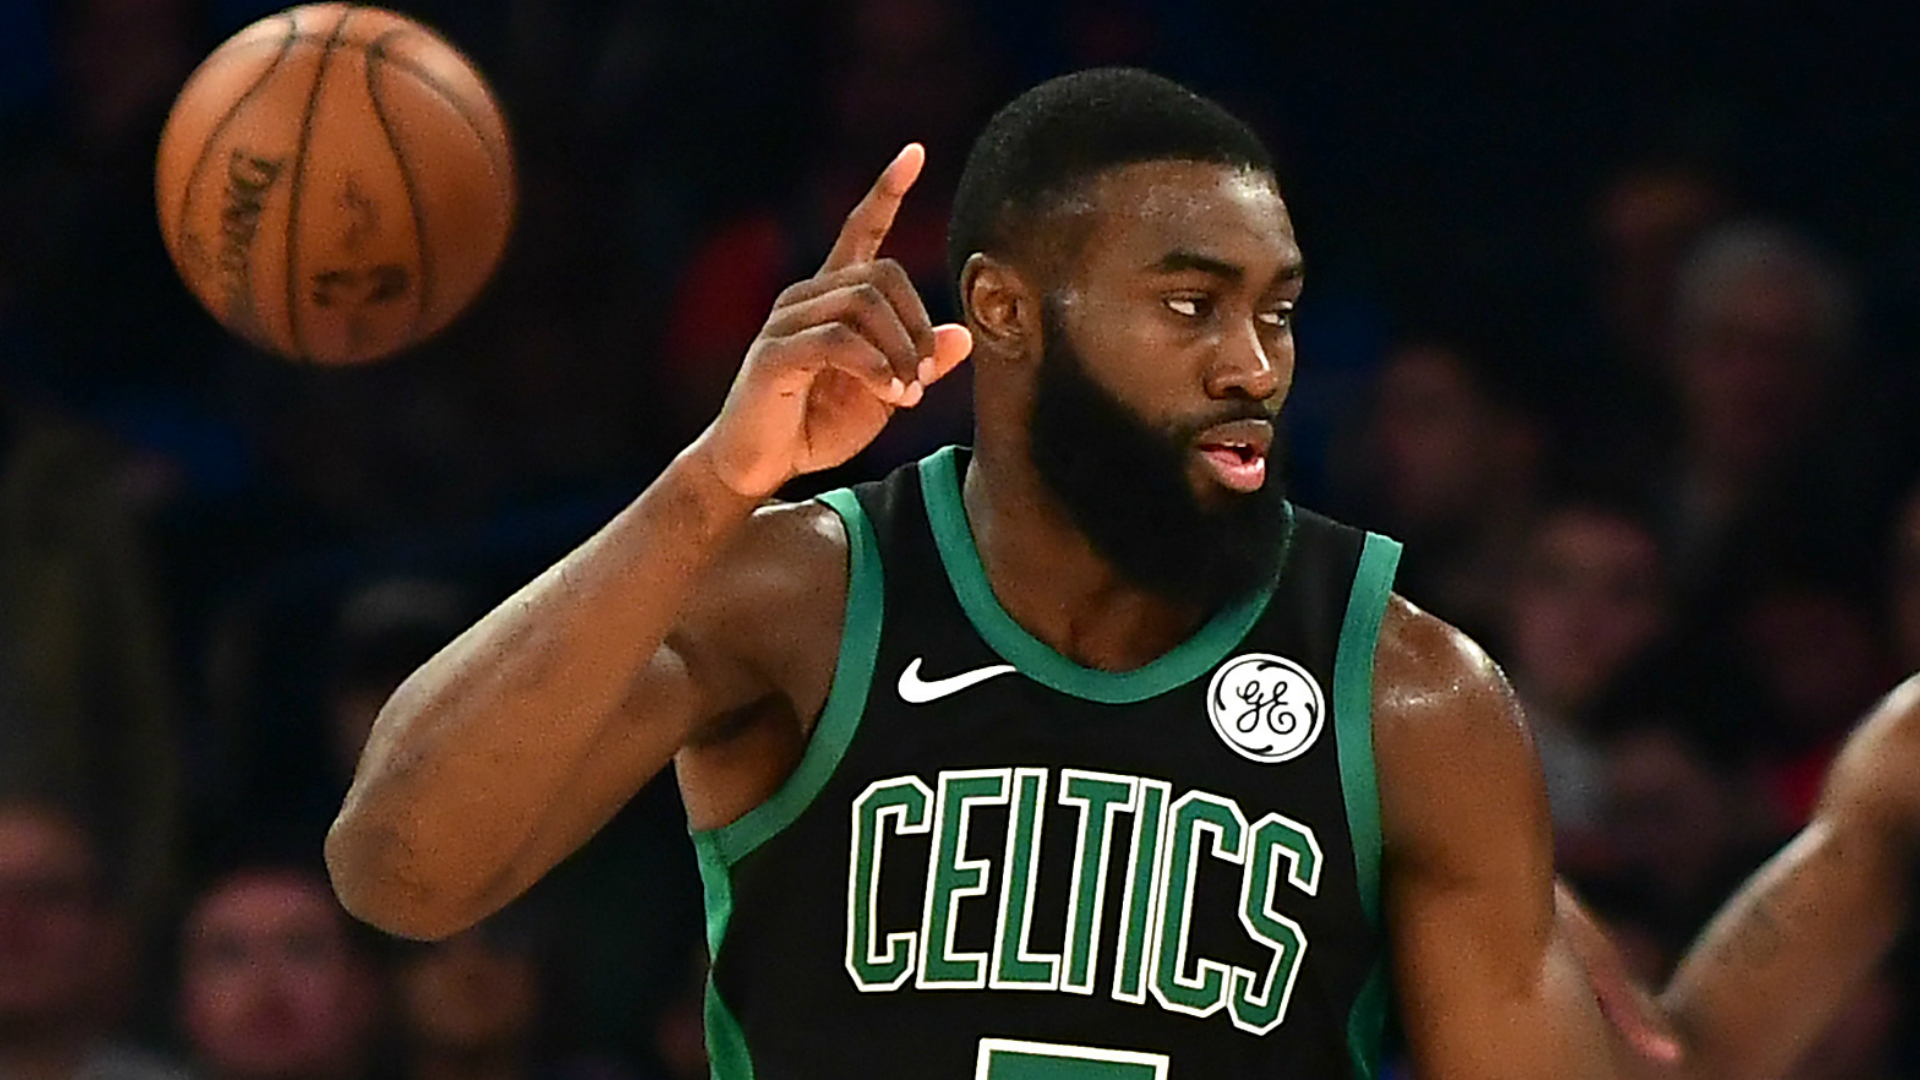 Brown stars but says Celtics 'have to get better'